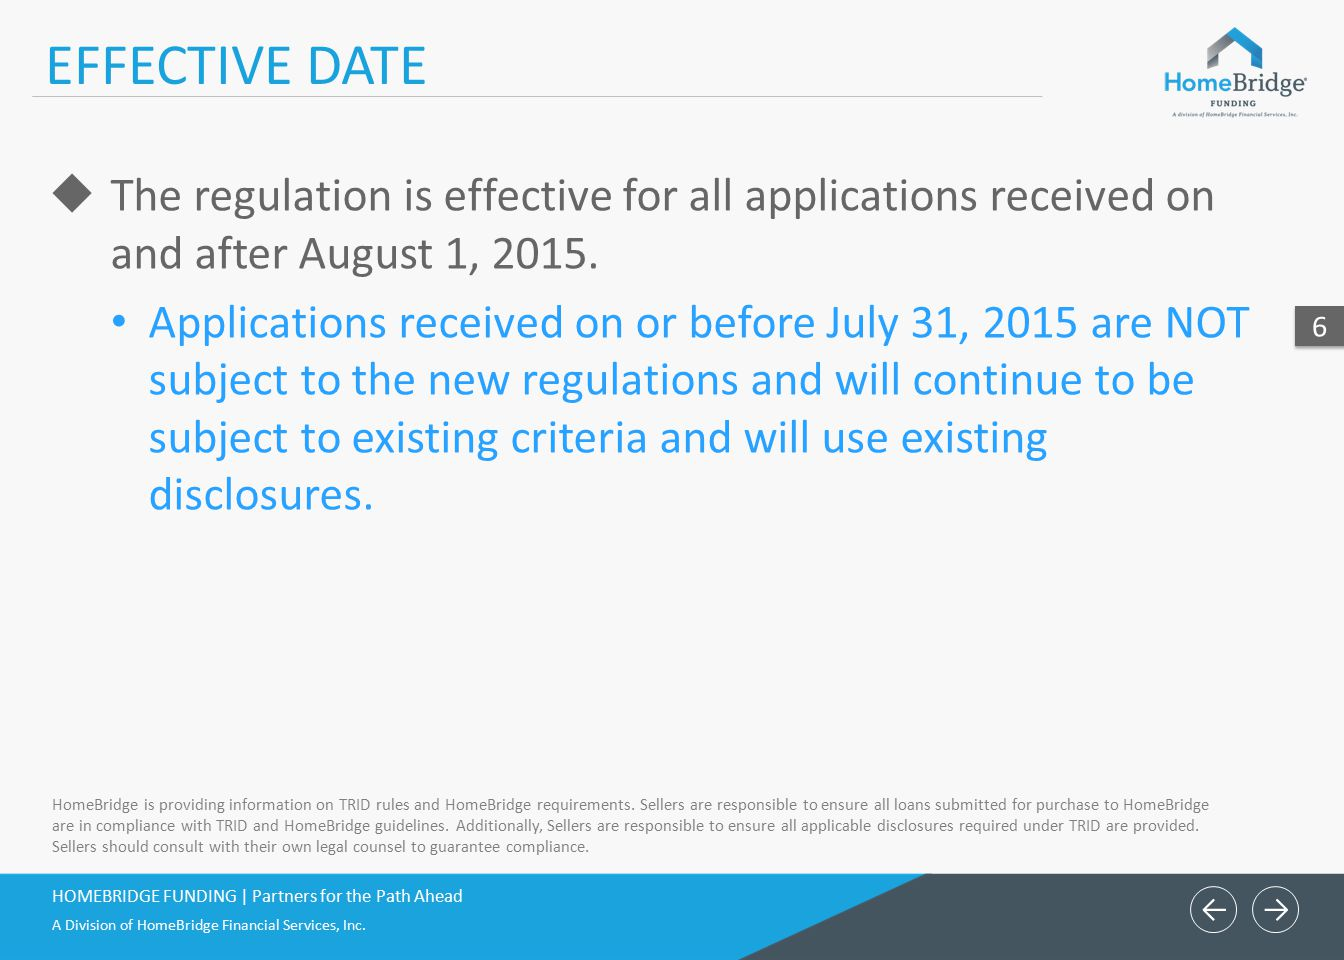 ← EFFECTIVE DATE. The regulation is effective for all applications received on and after August 1,